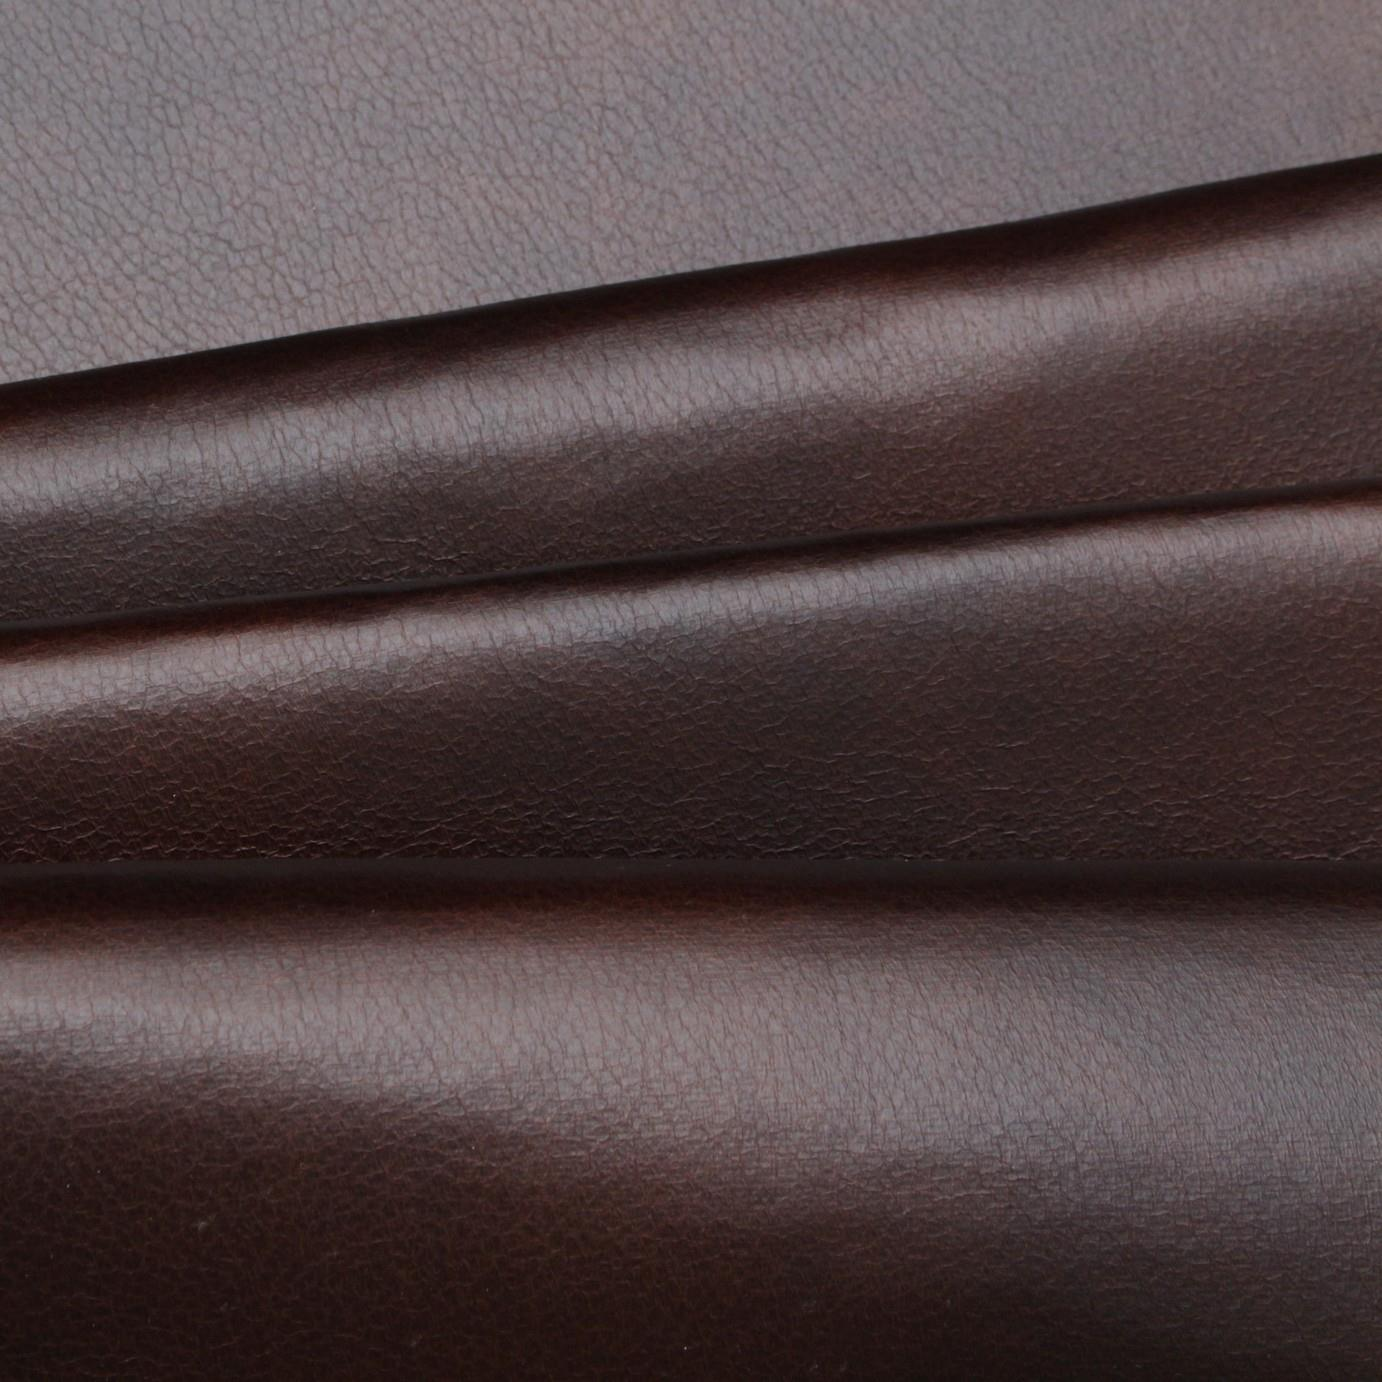 Antique Distressed Look Faux Leather Upholstery Fabric